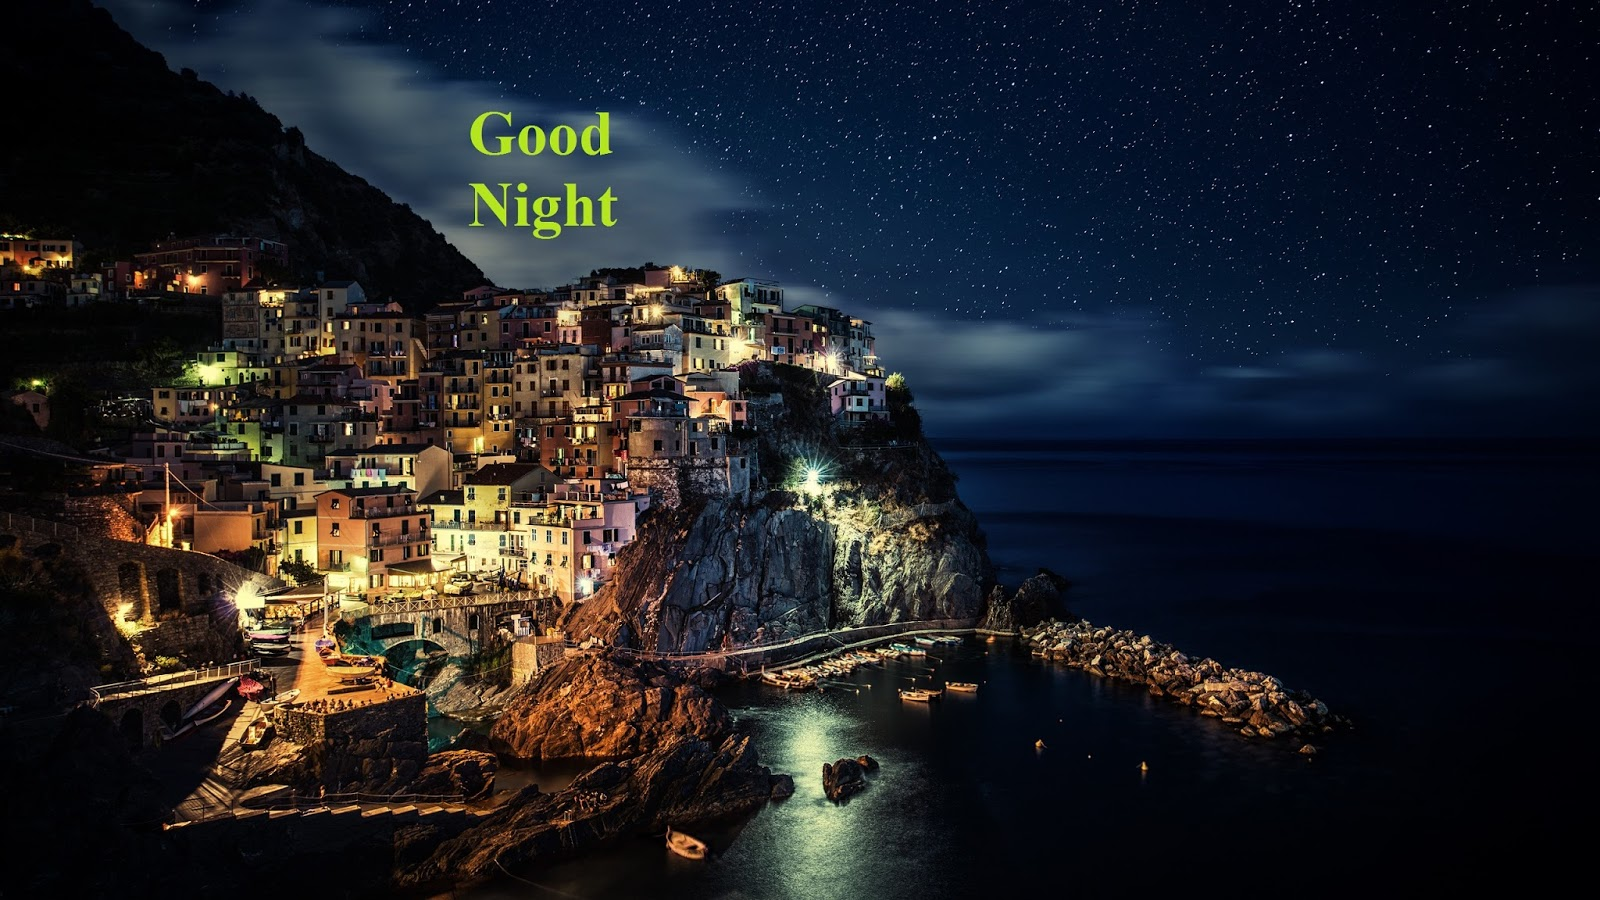 Good Night 3d Wallpaper Good Night Images Mobile Wallpaper